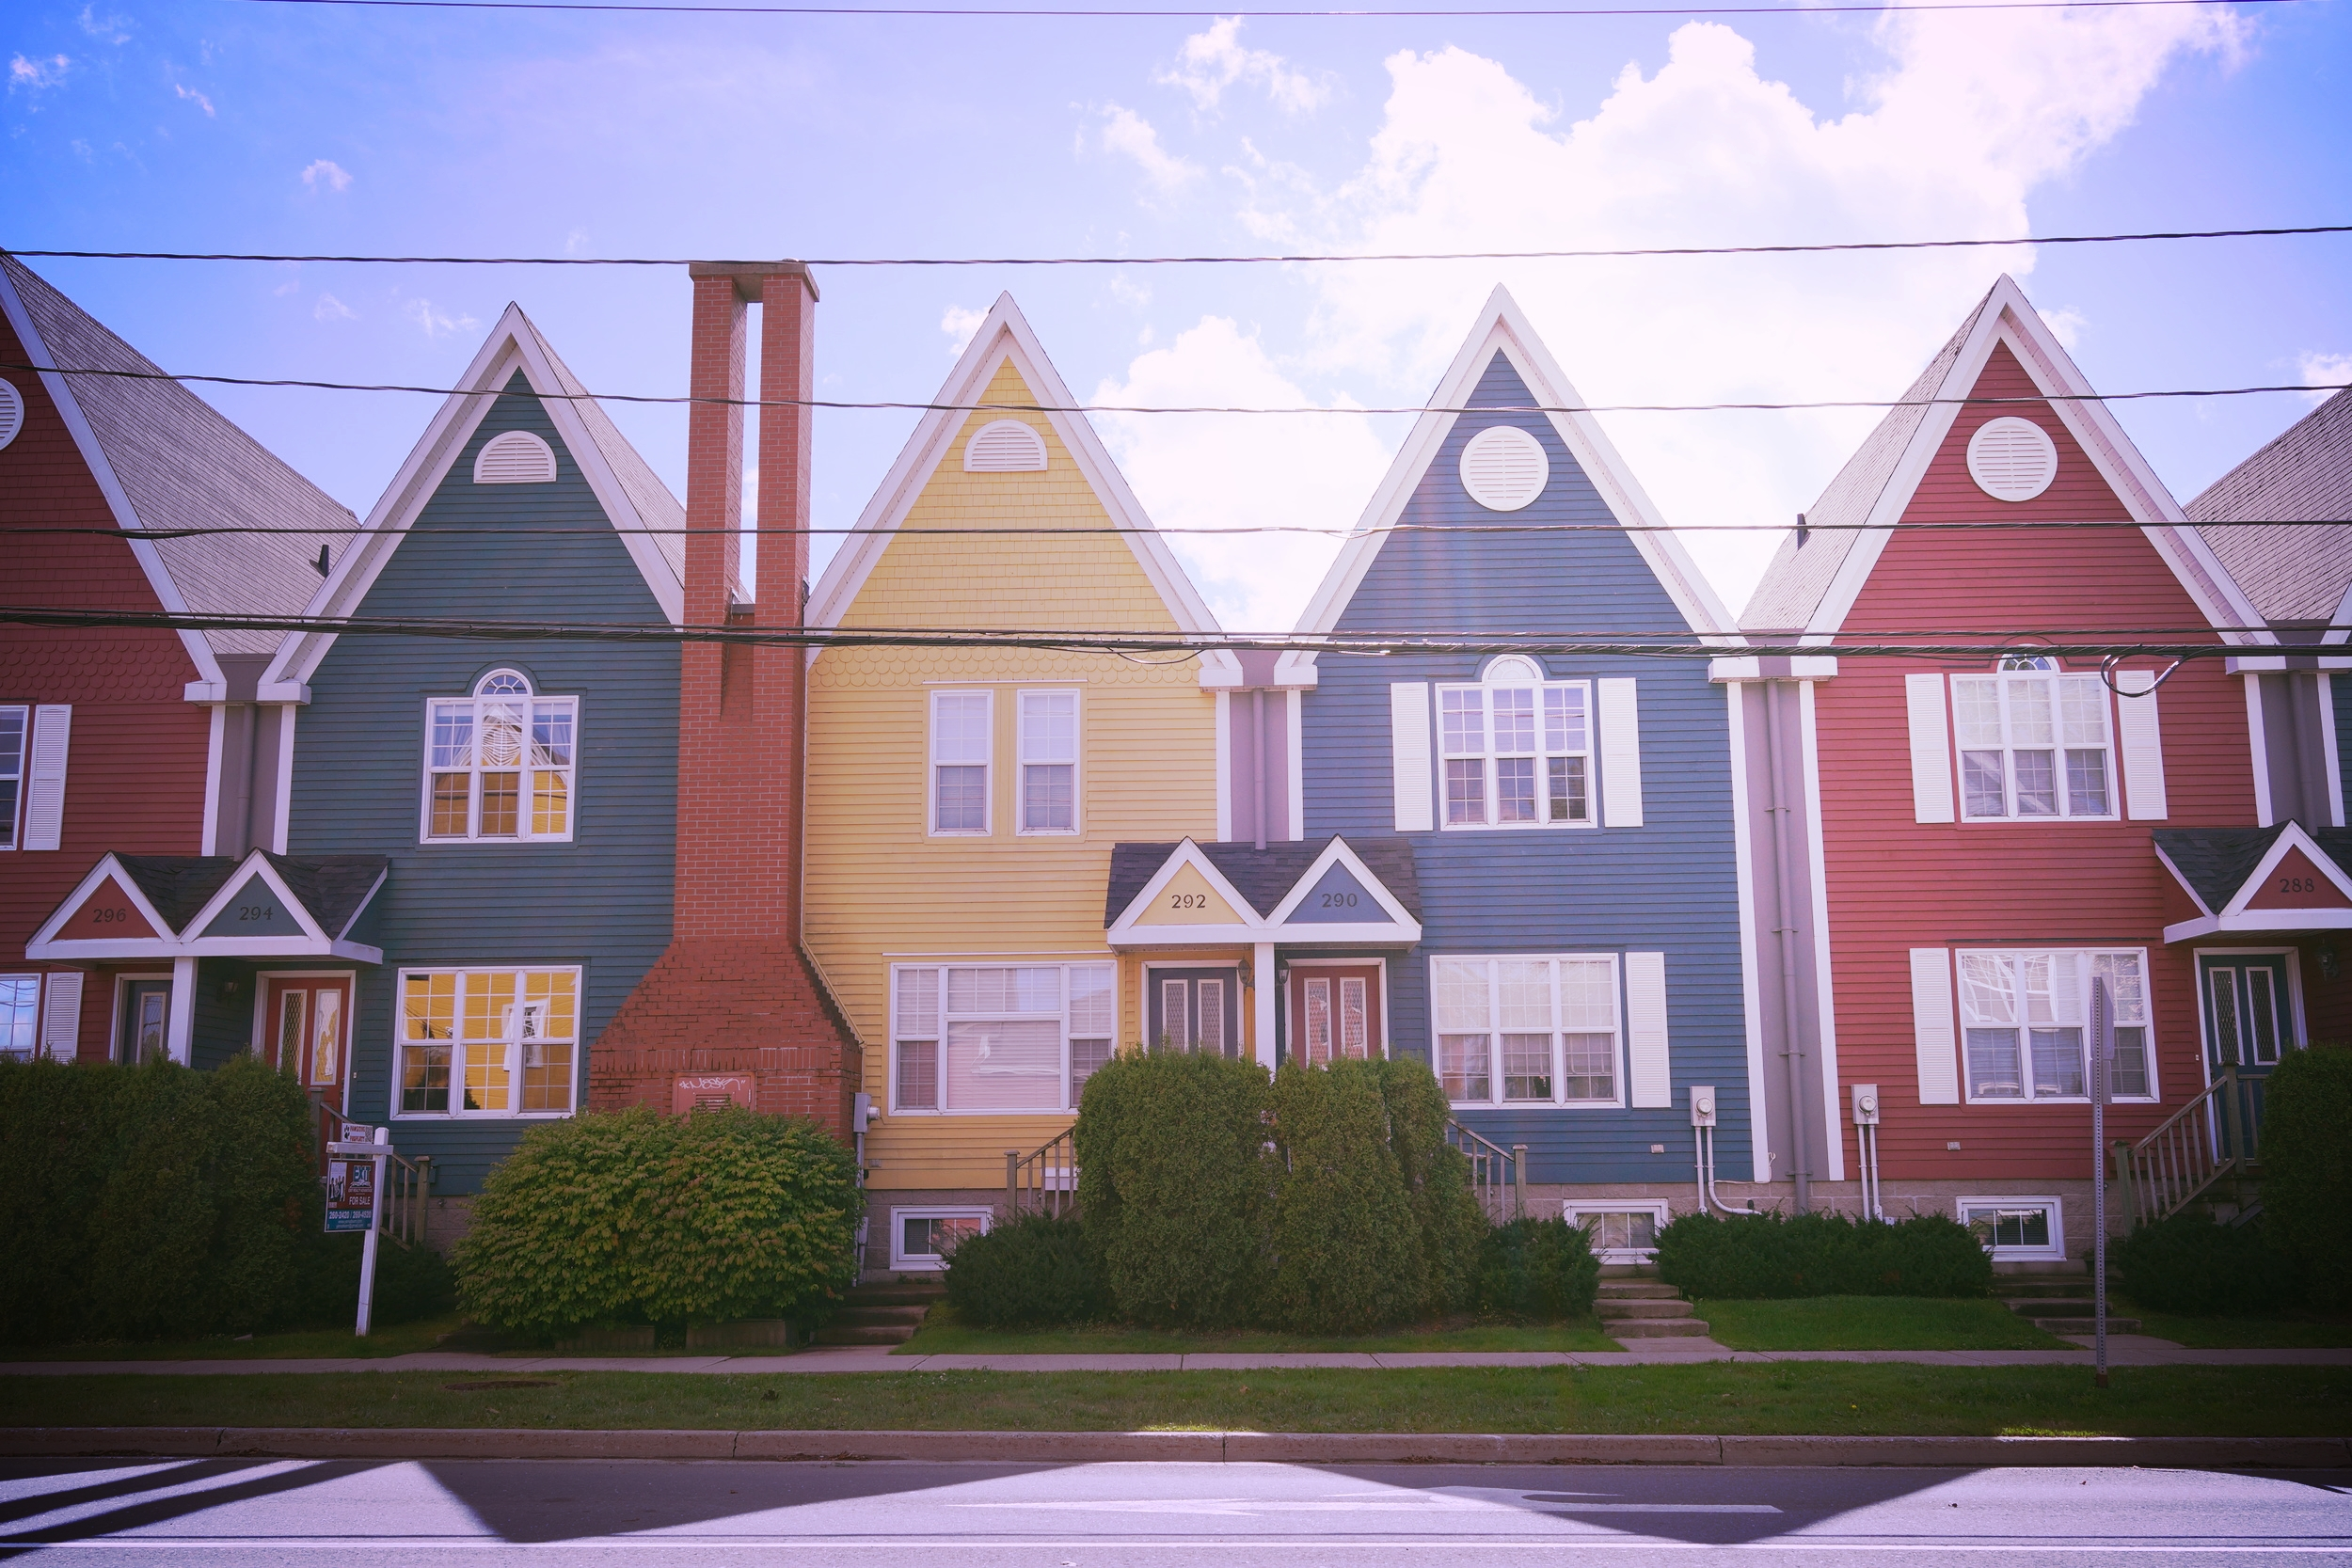 Townhouses in Fredericton, Canada